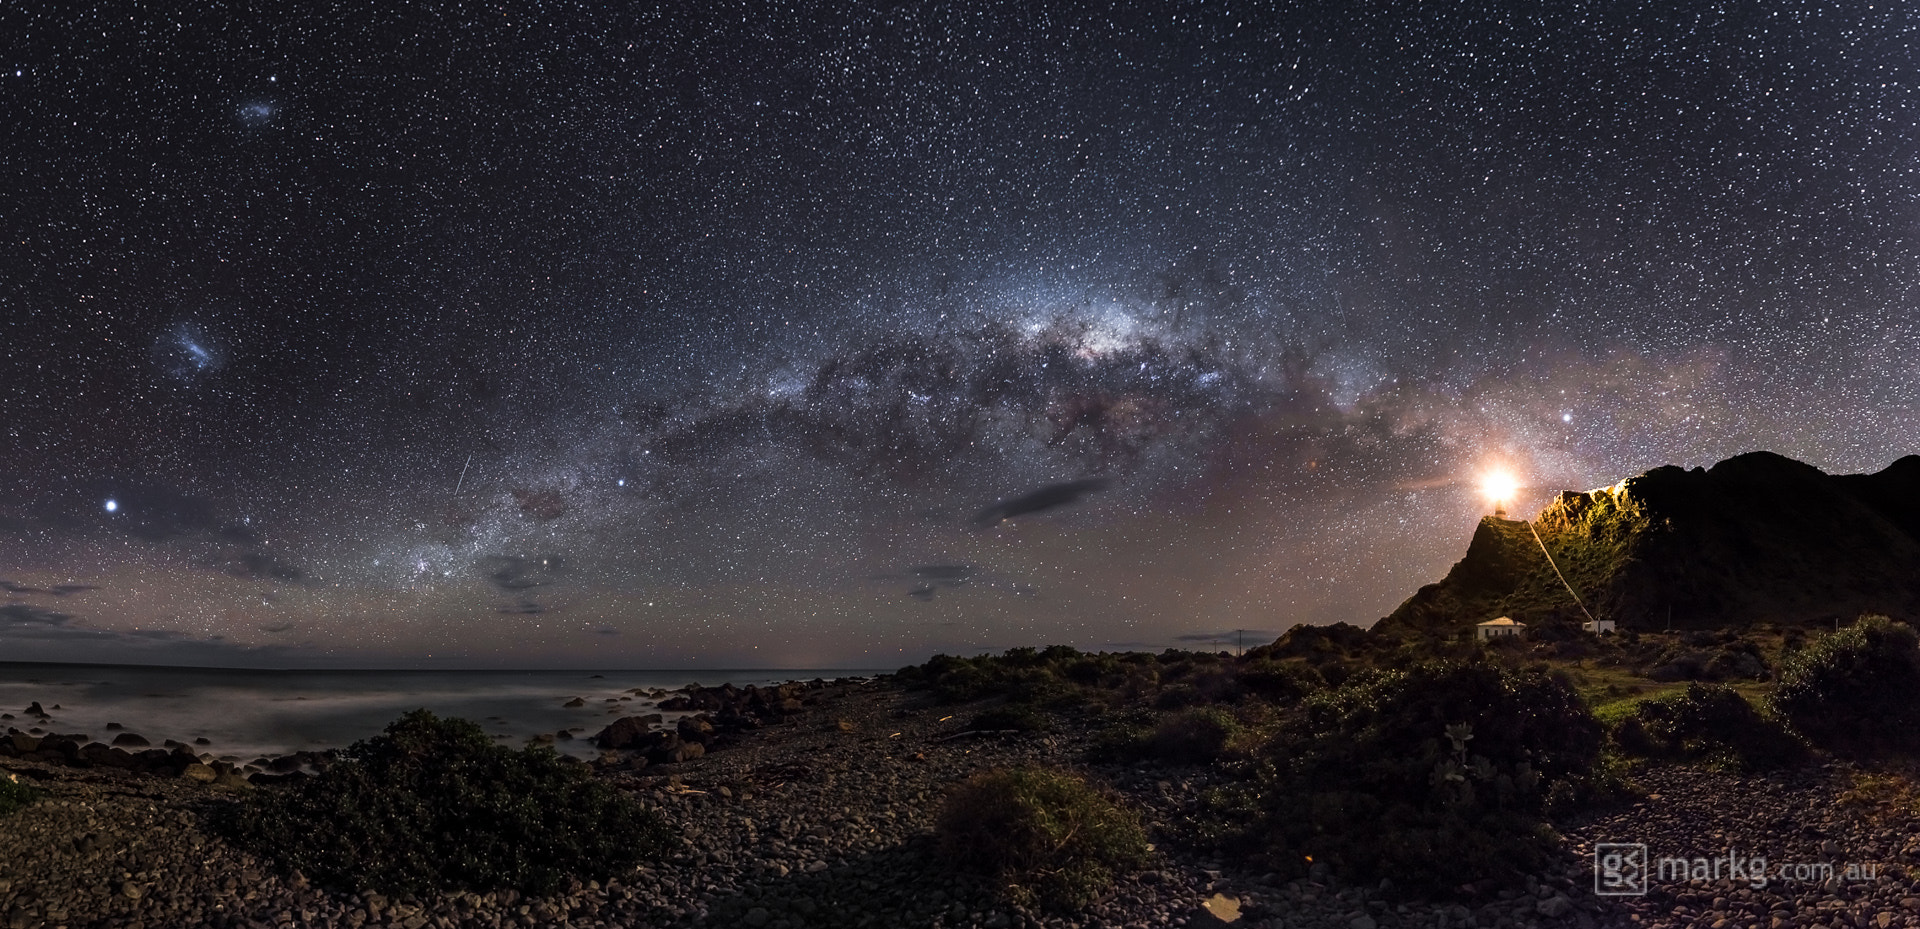 Photograph Guiding Light To The Stars by Mark Gee on 500px